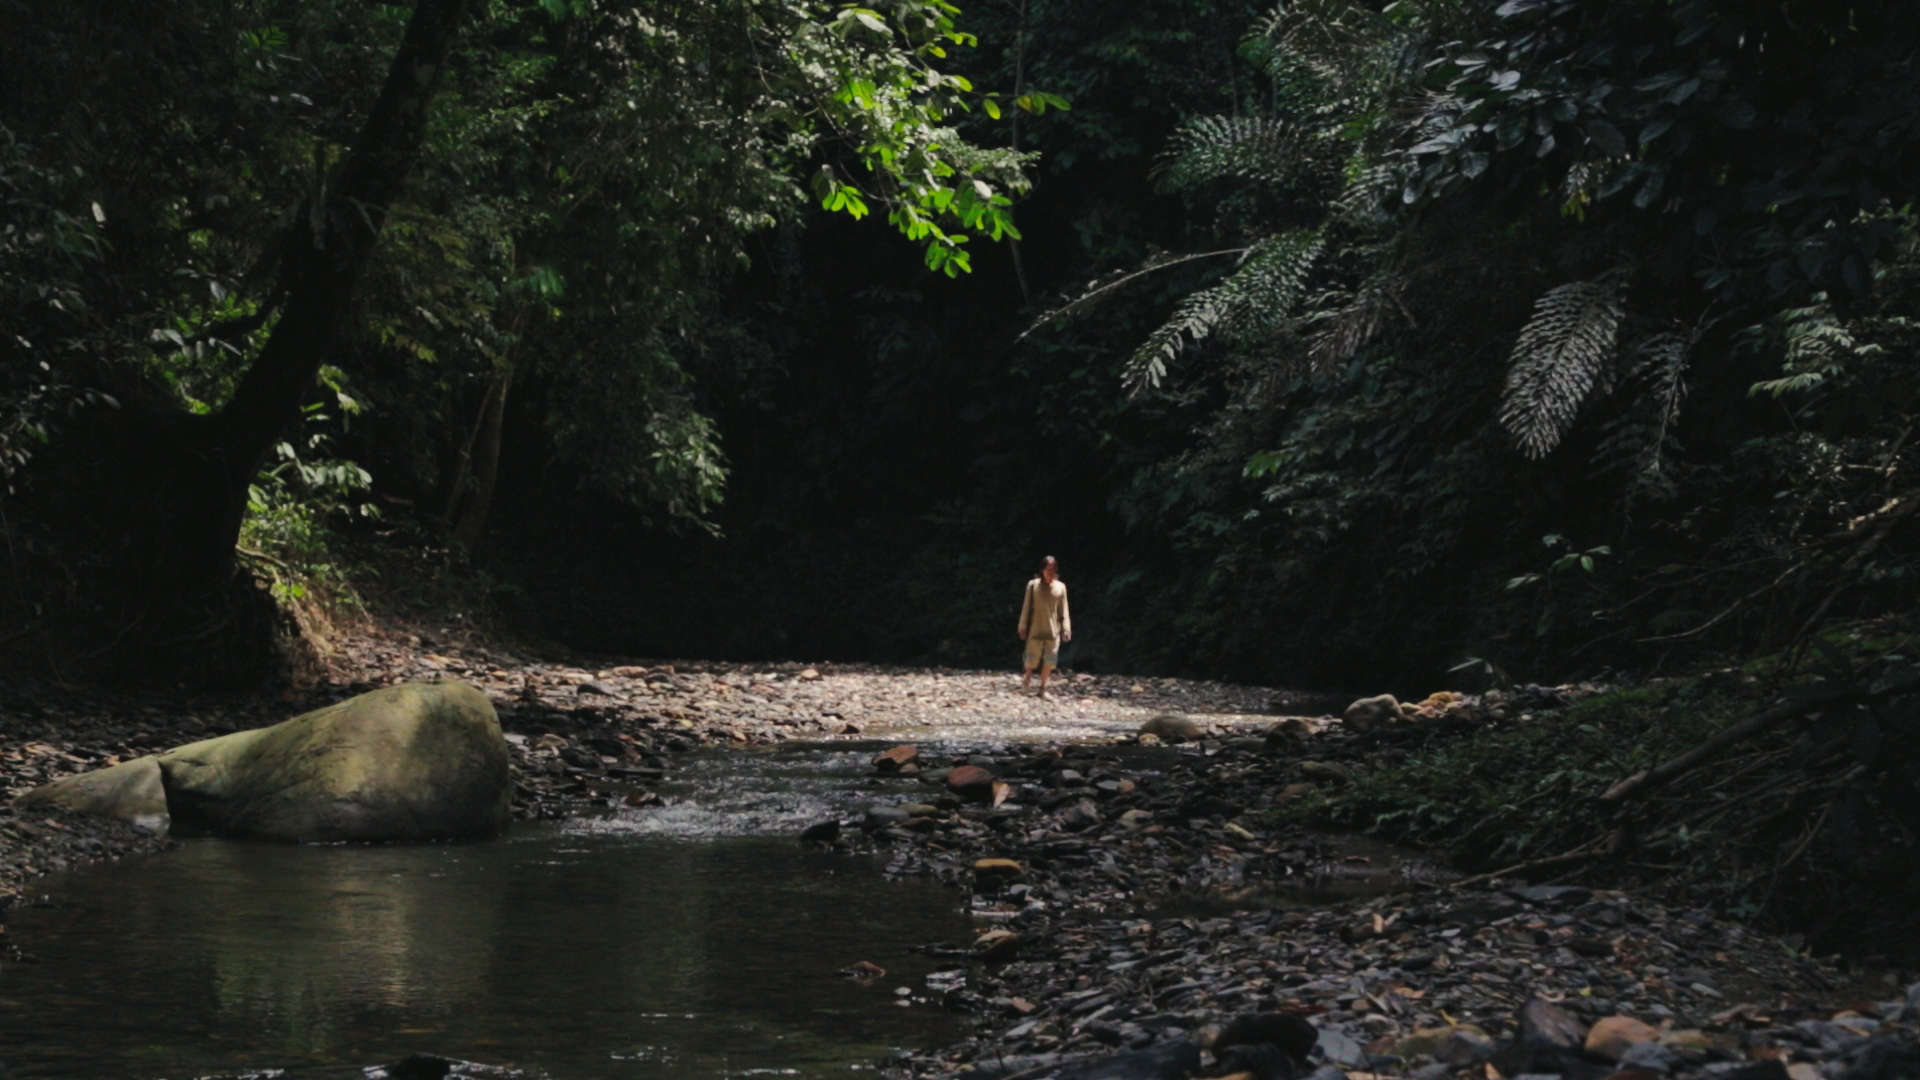 ATimeToSwim_film still_laurence in the forest_photo by Vincent Gonneville.jpg